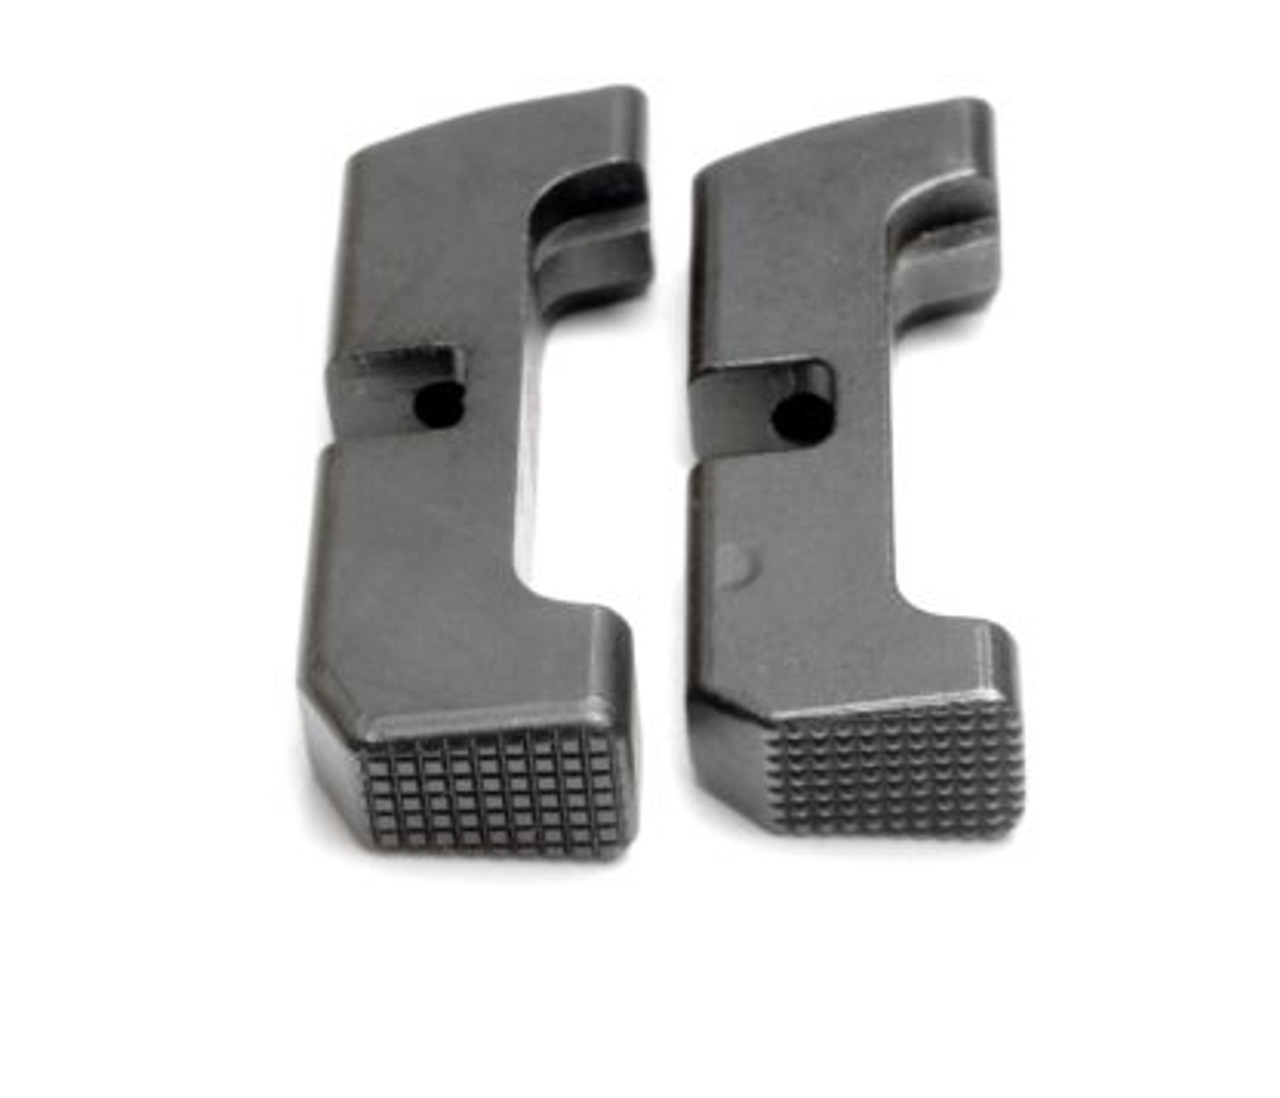 HB Industries CZ P10 Extended Magazine Release, Reversible